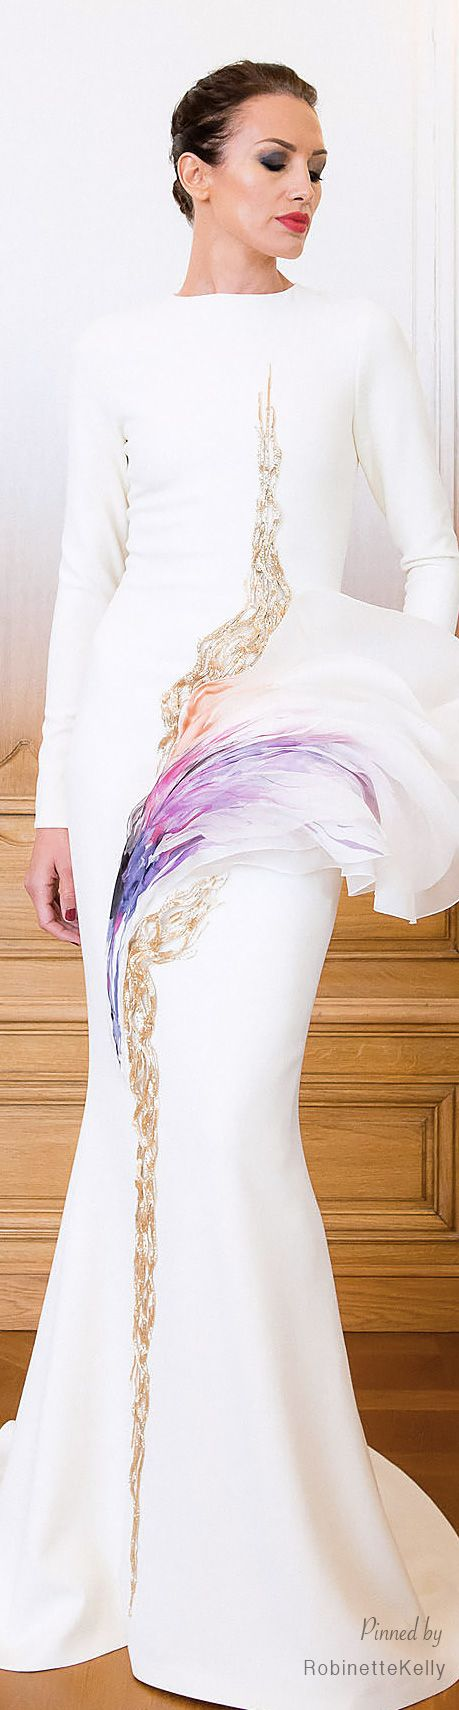 Stephane Rolland Haute Couture | F/W 2014-15 §